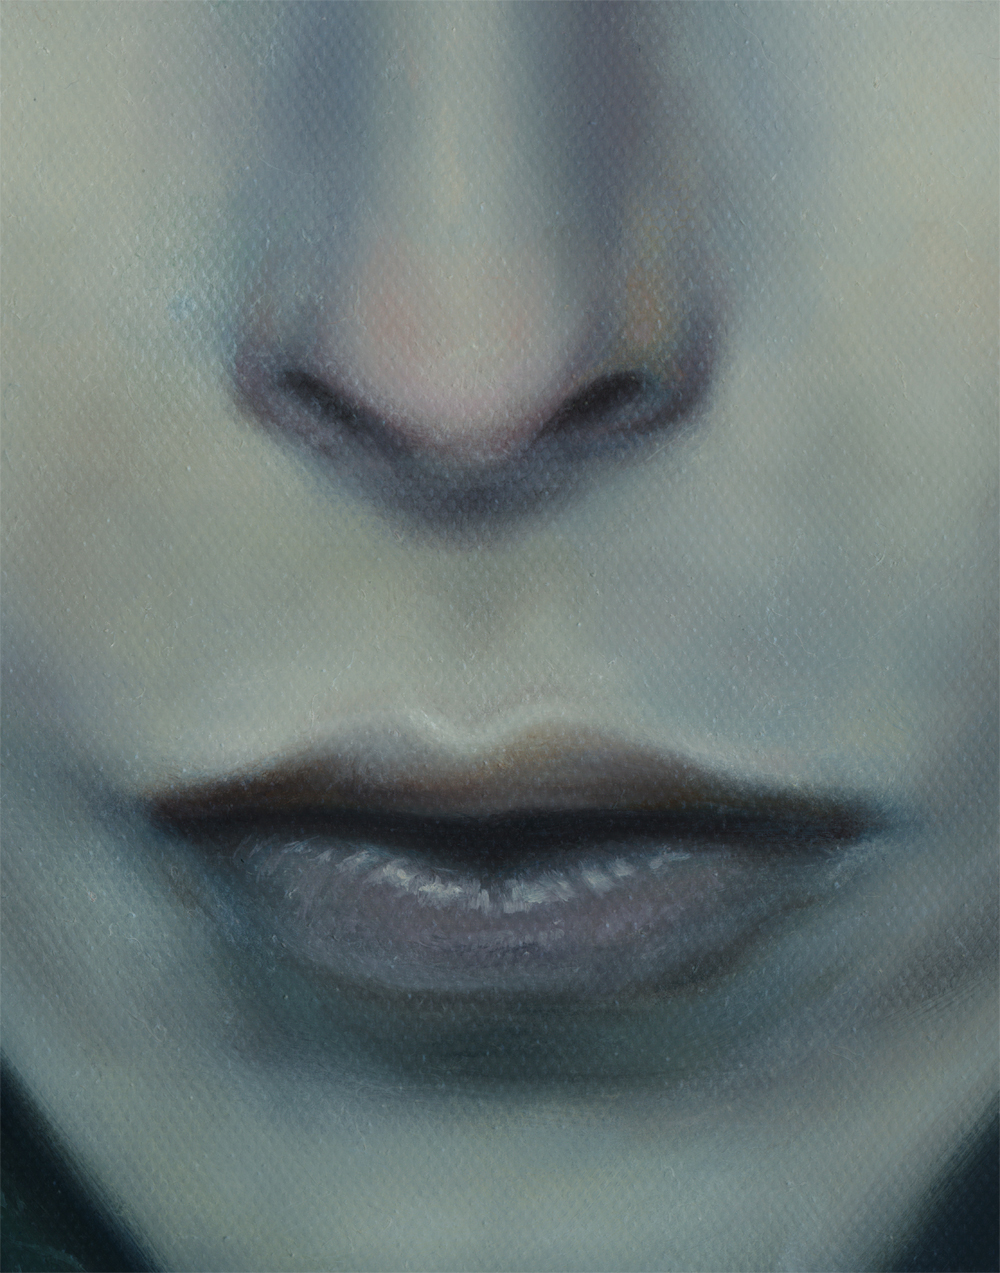 Detail, nose, david bowie painting